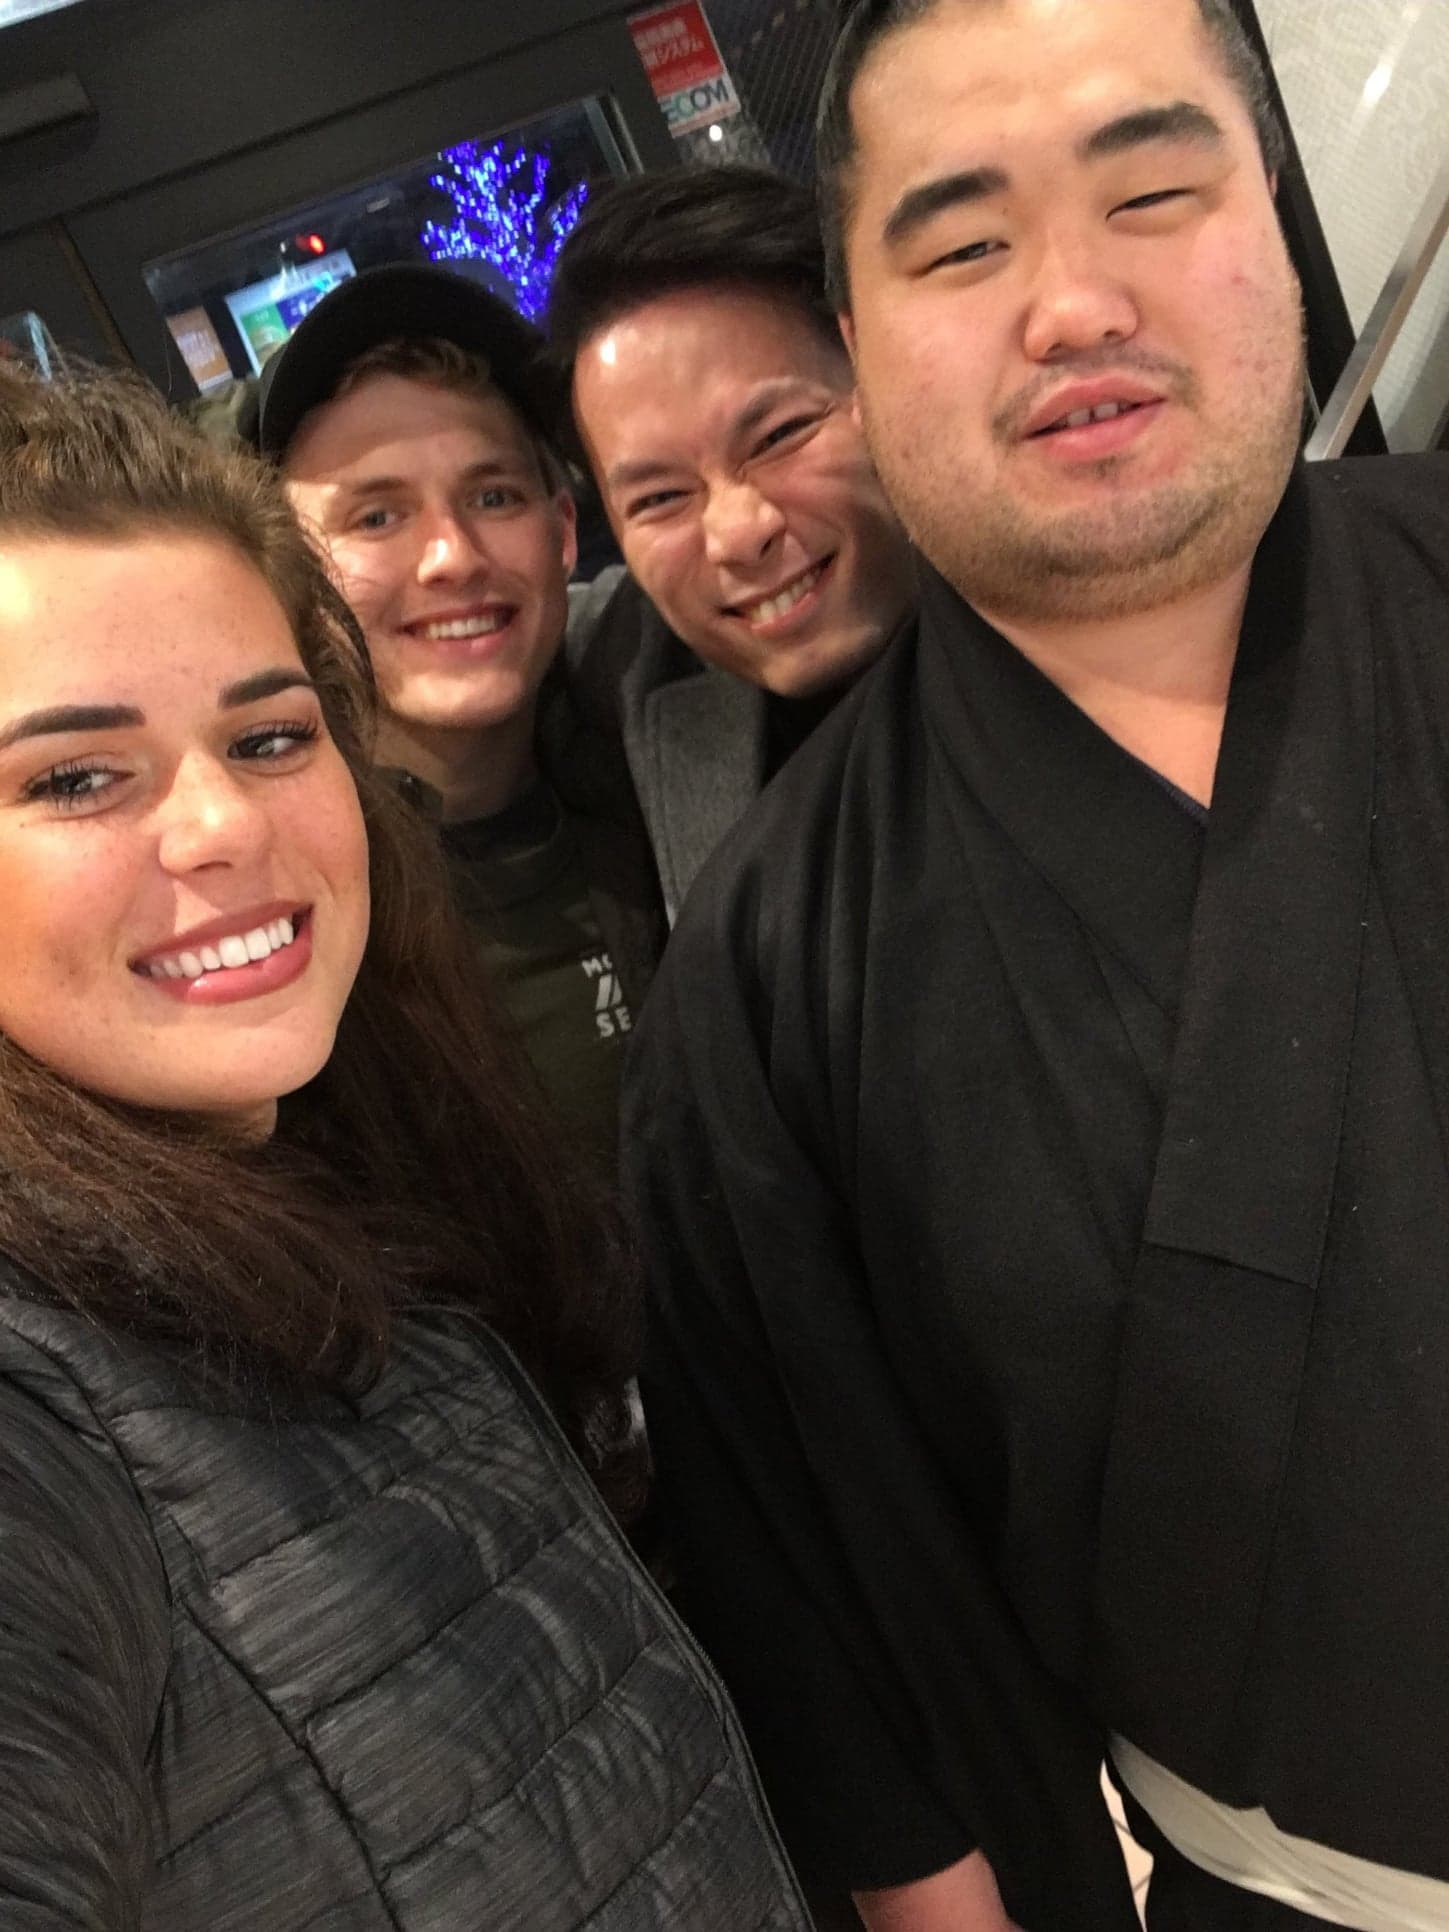 Selfie with a Sumo!